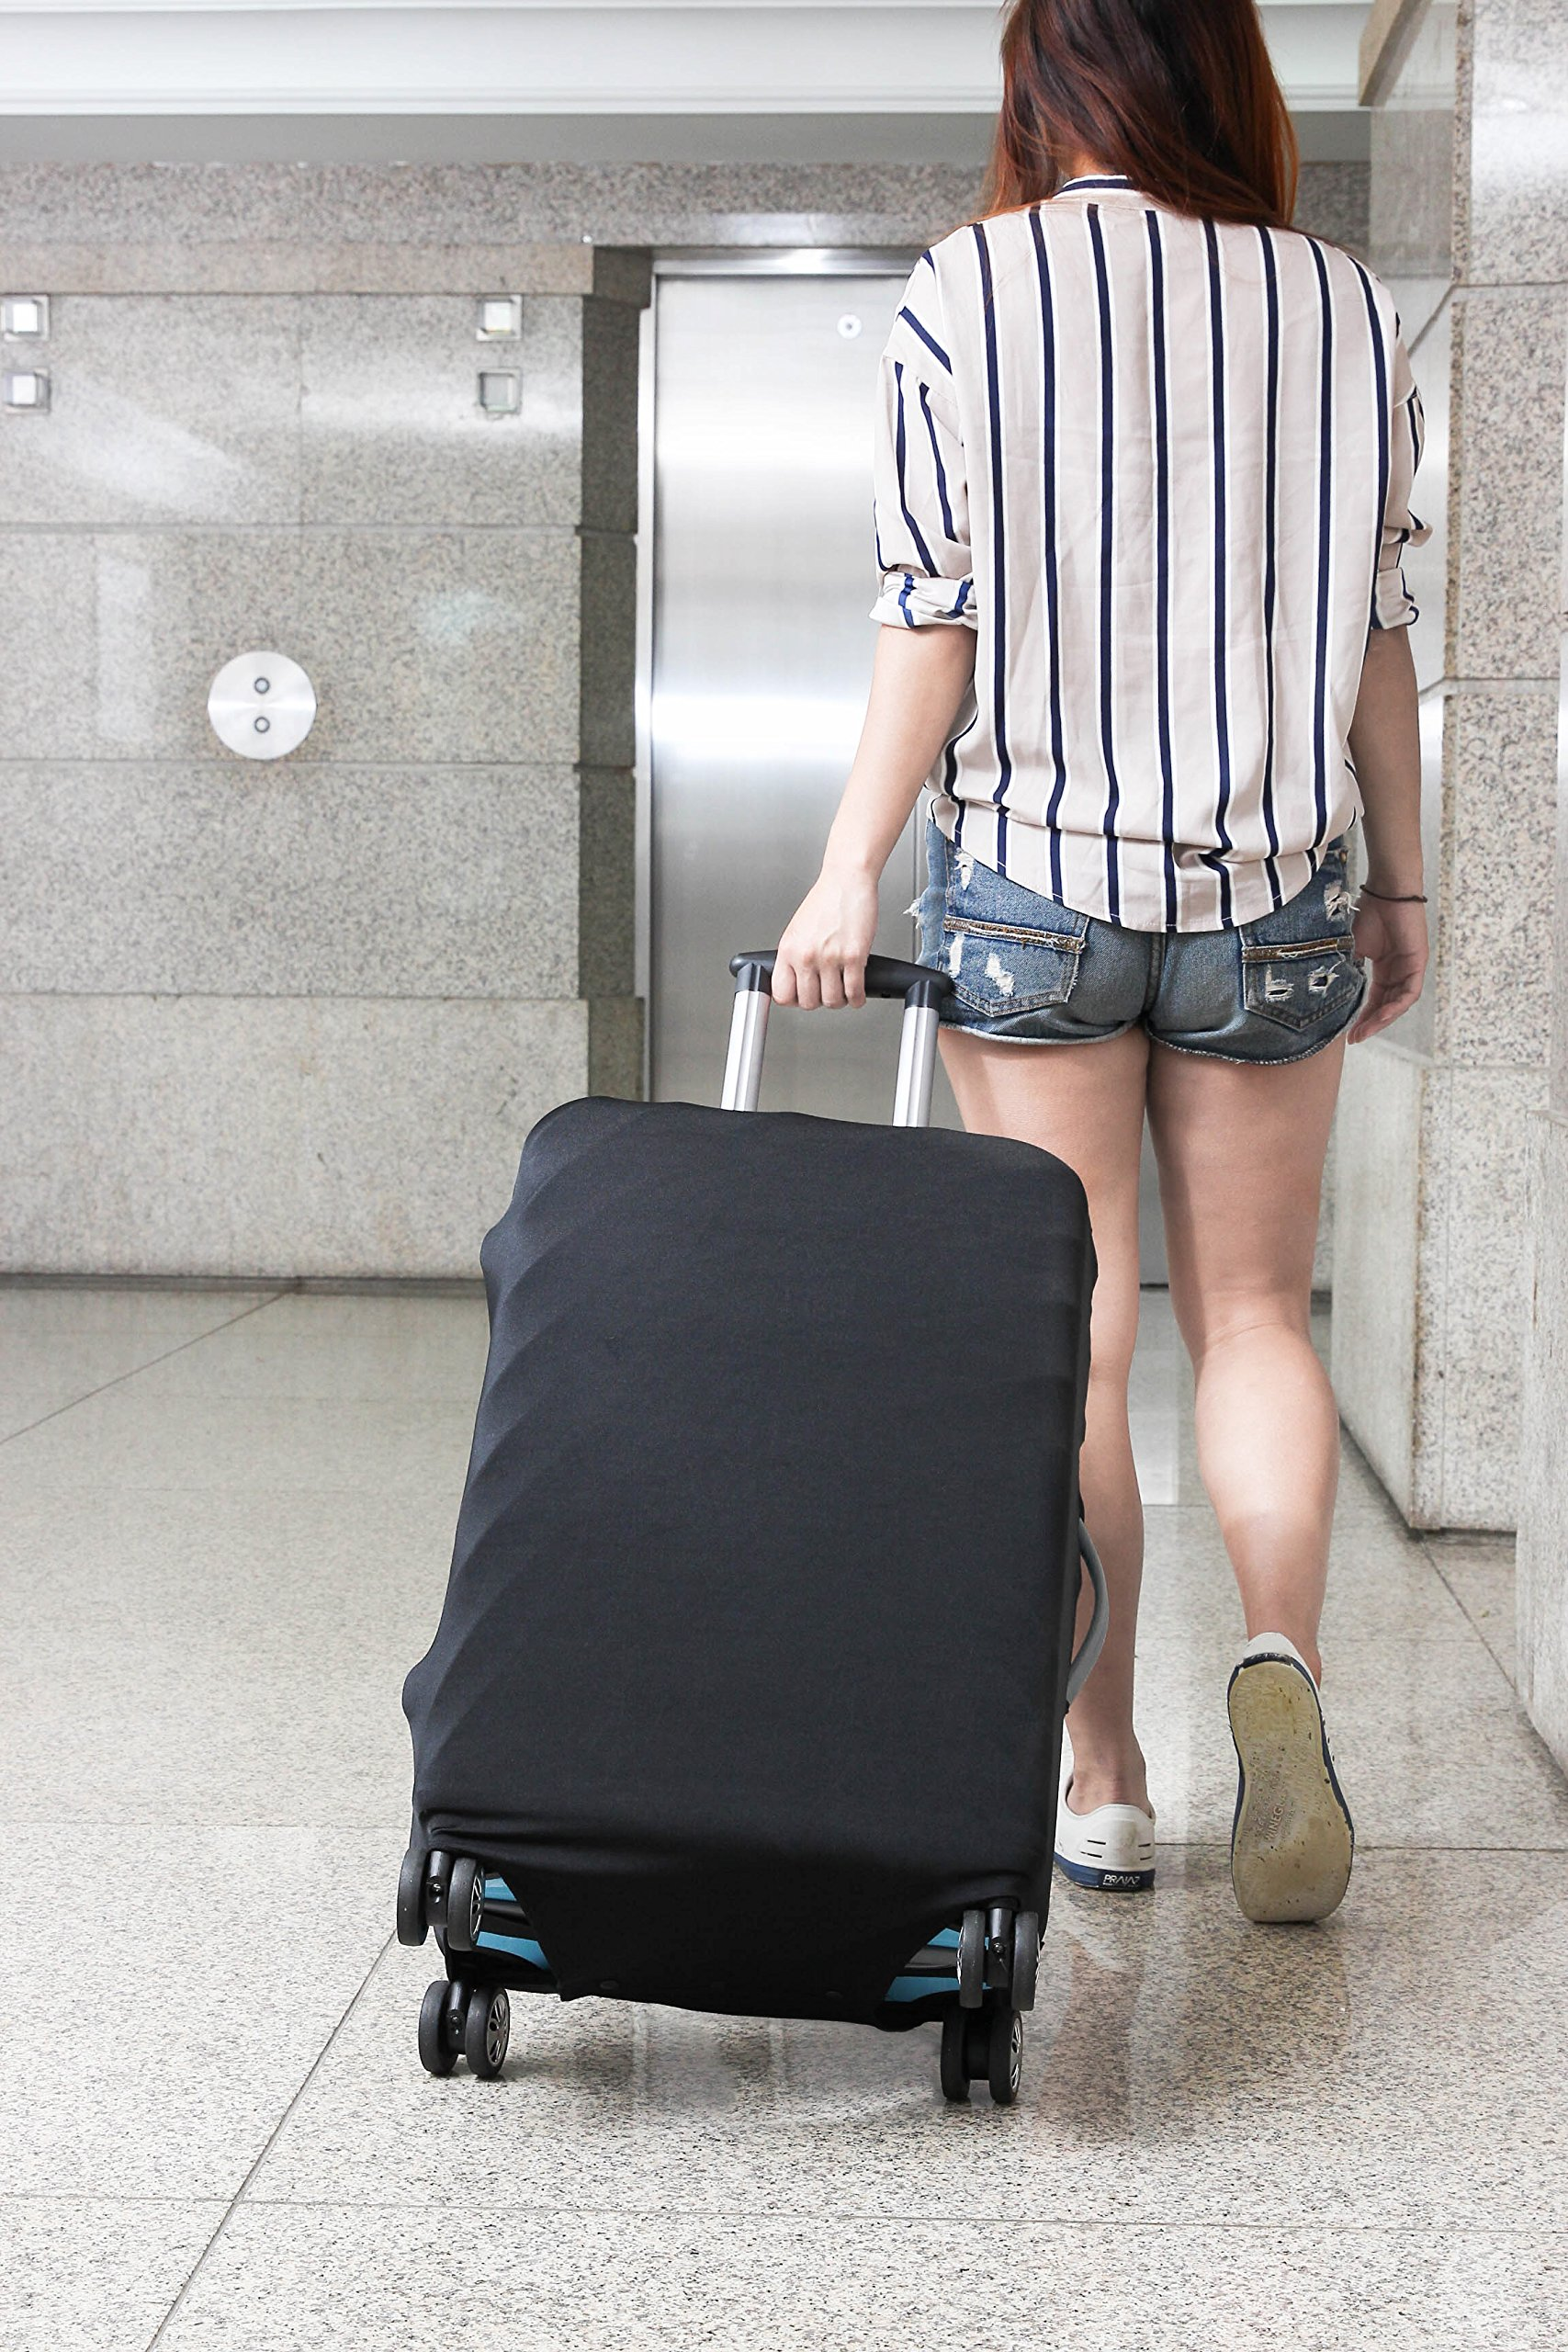 Travel Luggage Protective Cover - Stretchable Suitcase Protector Case, Black, 26 Inches by Juvale (Image #6)